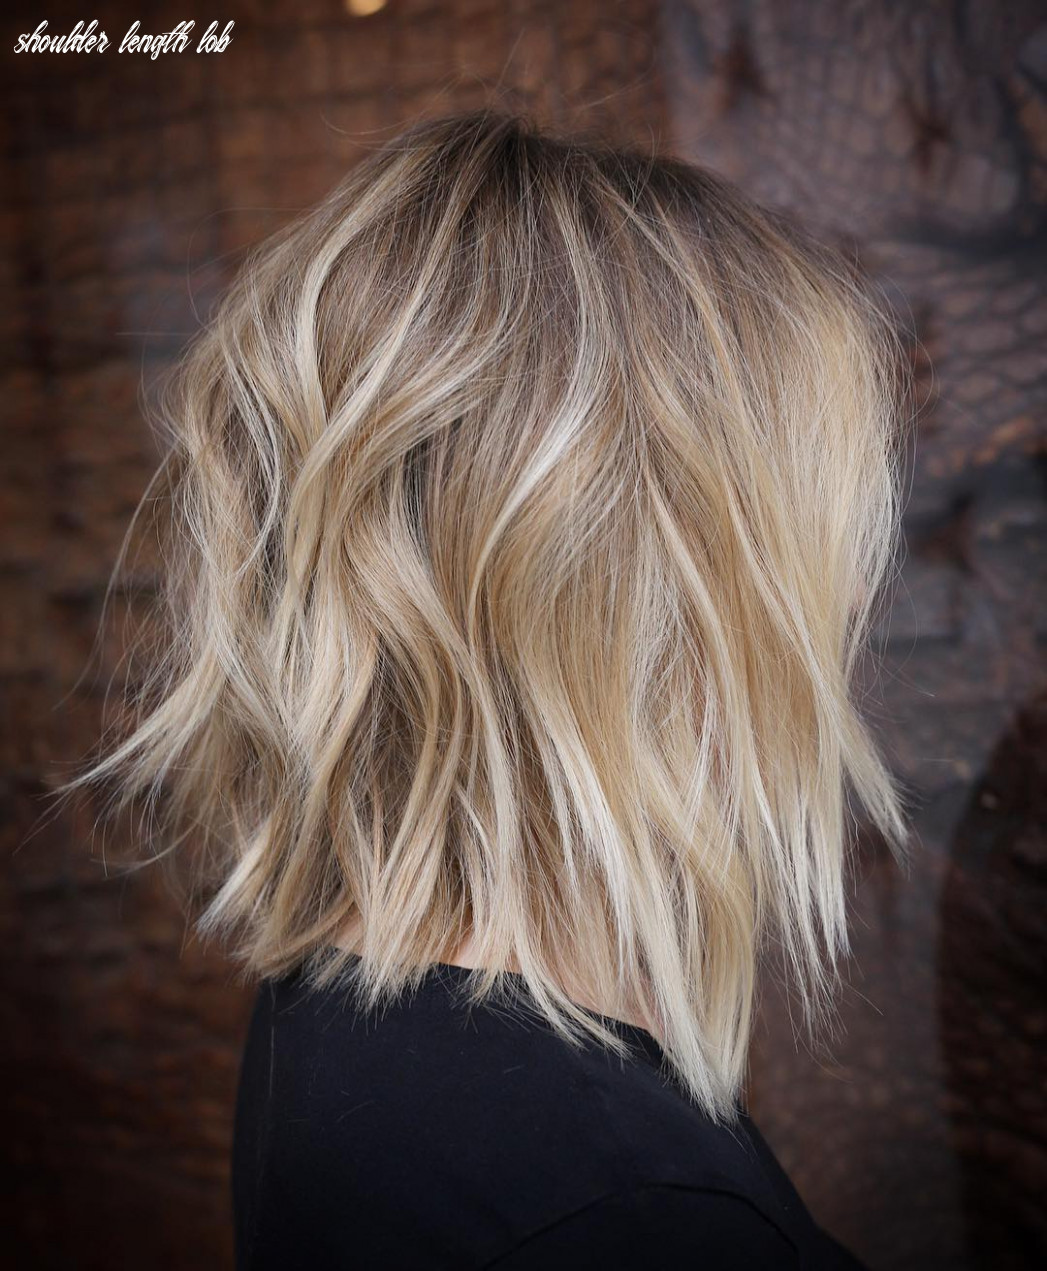 12 stylish lob hairstyle ideas, best shoulder length hair for